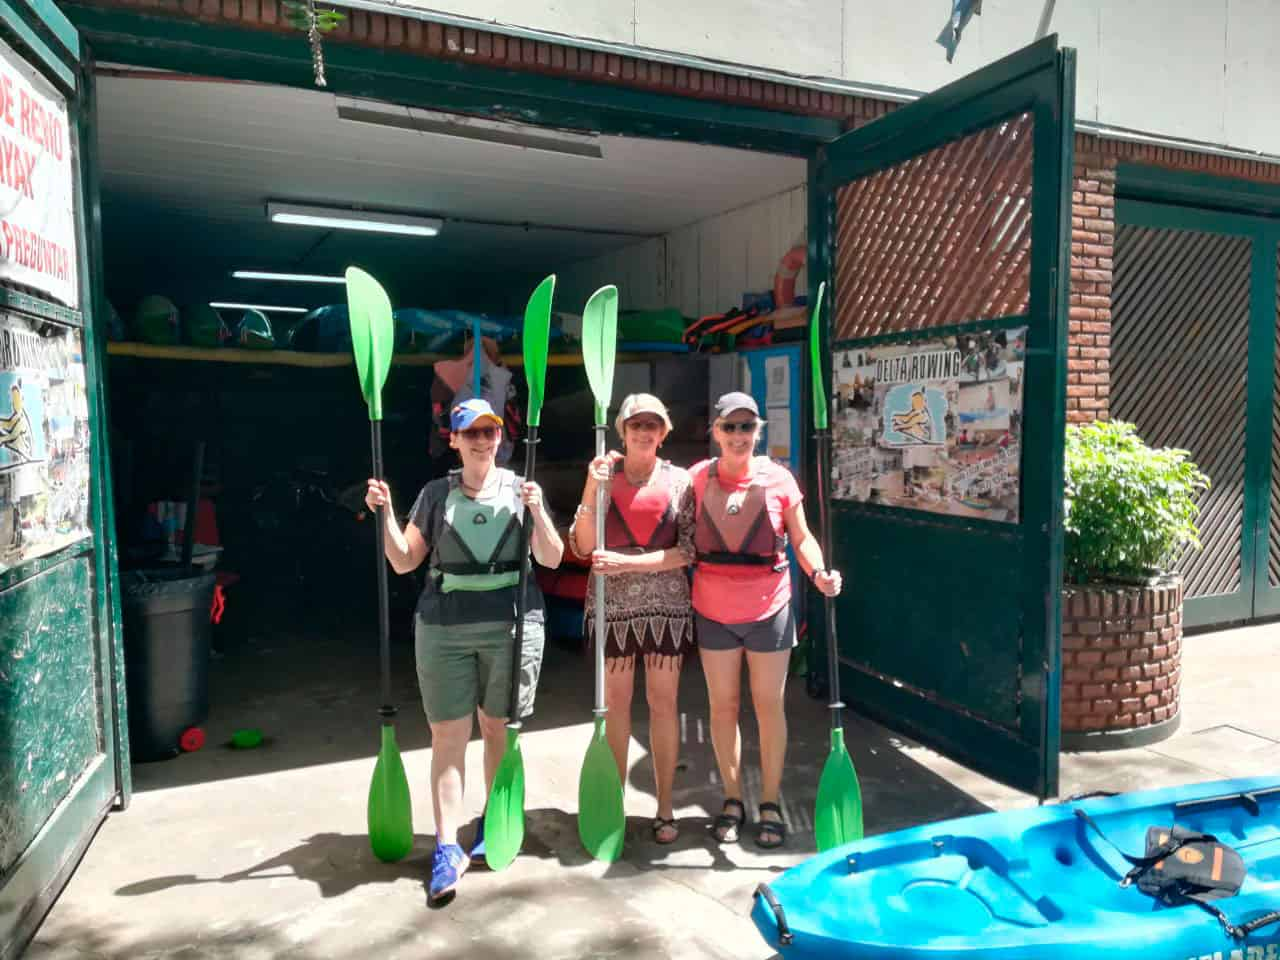 Group of girls ready to row in Tigre, Buenos Aires.